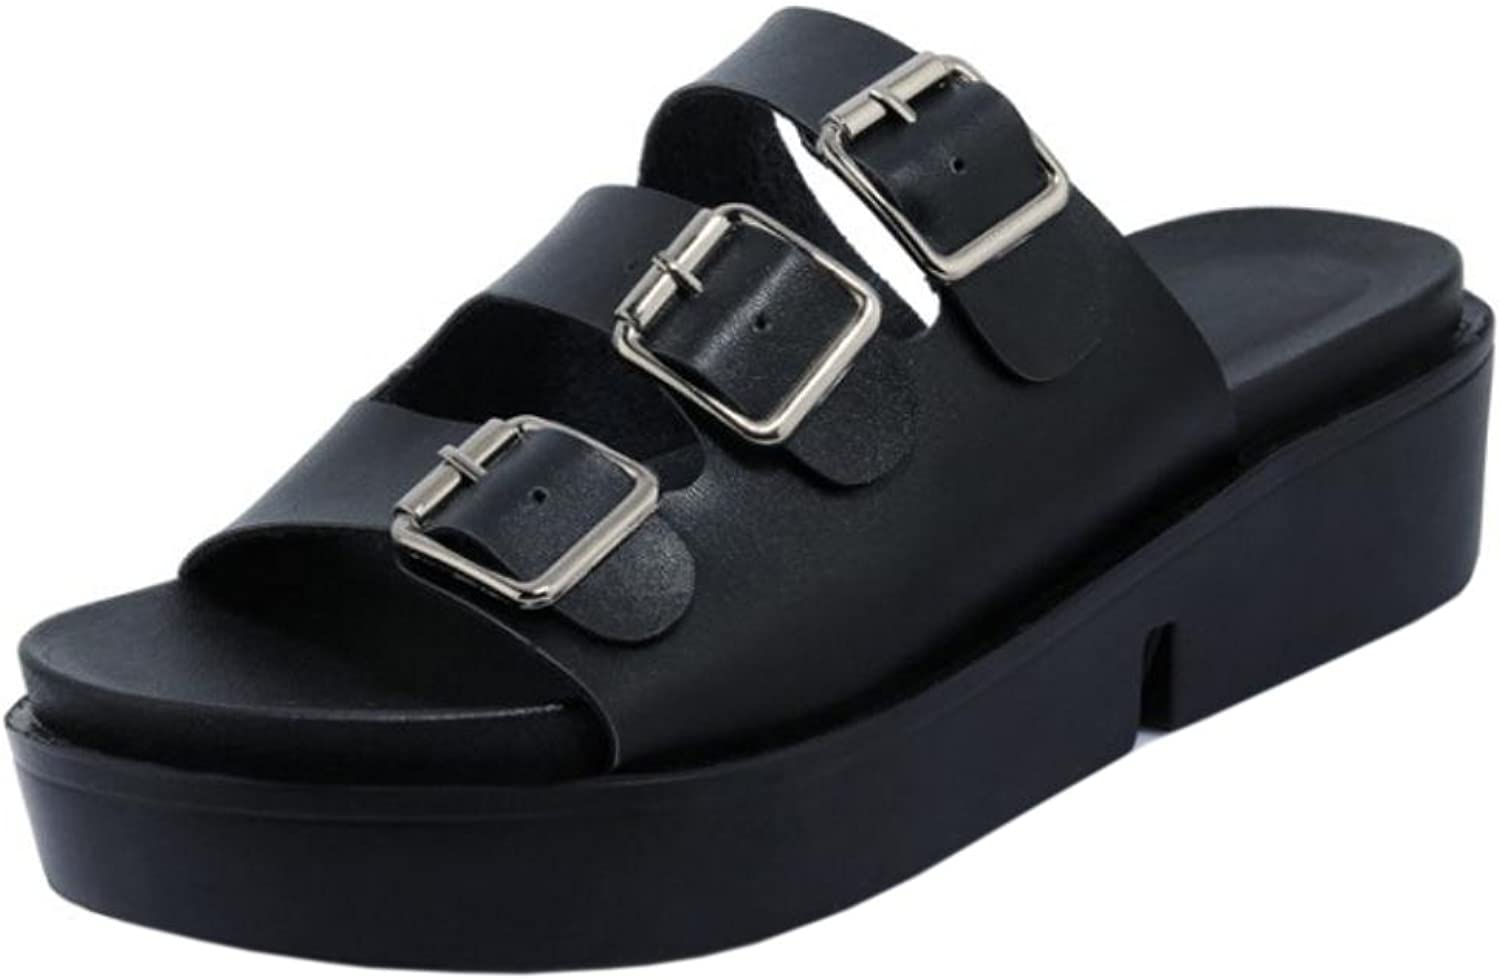 TAOFFEN Women's Casual Sandals Mules shoes